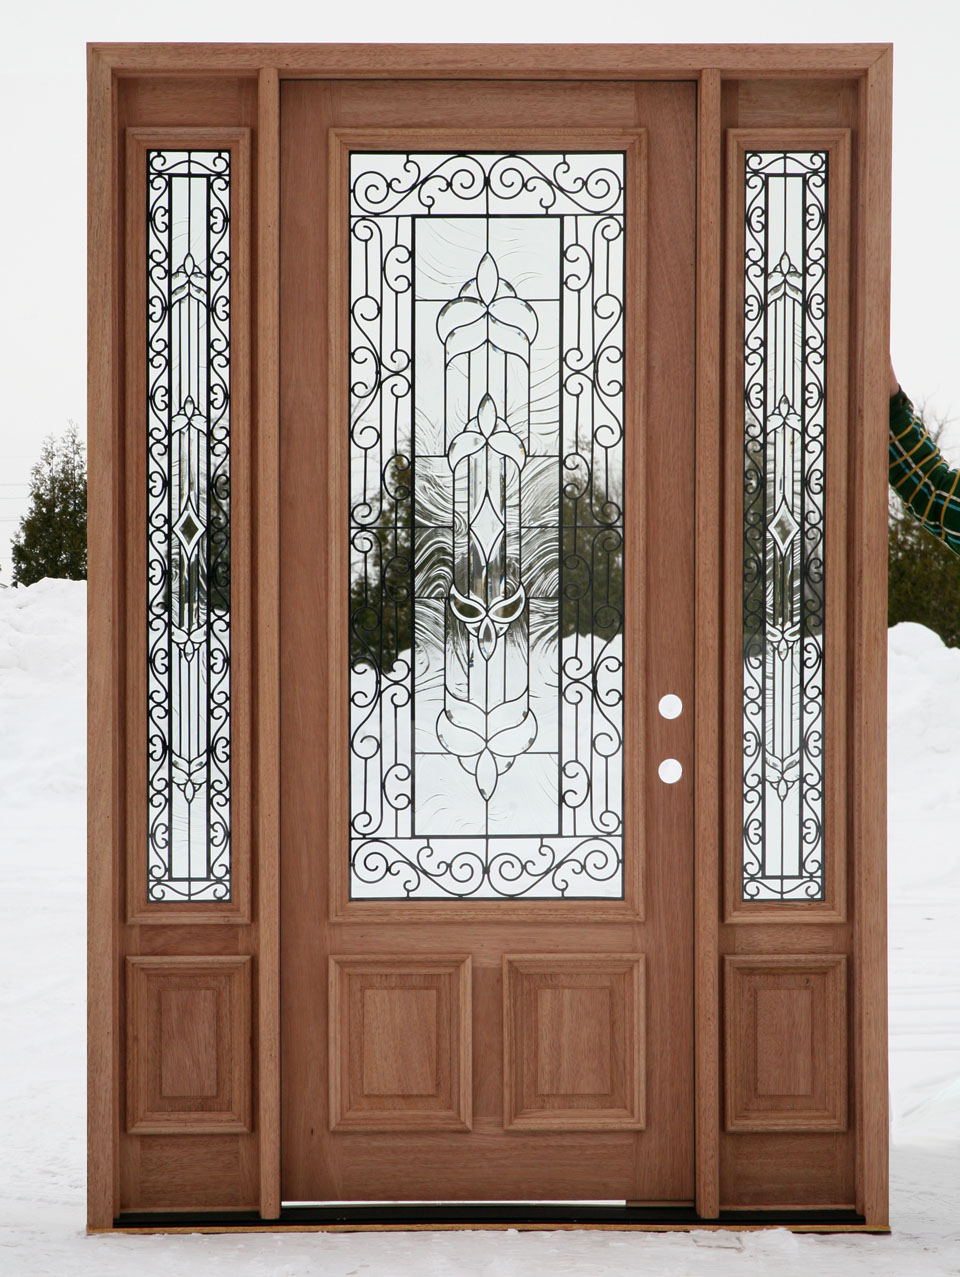 Frosted glass front door - All Products Exterior Windows Amp Doors Doors Interior Doors Glass Doors Frosted Glass Front Entry Doors